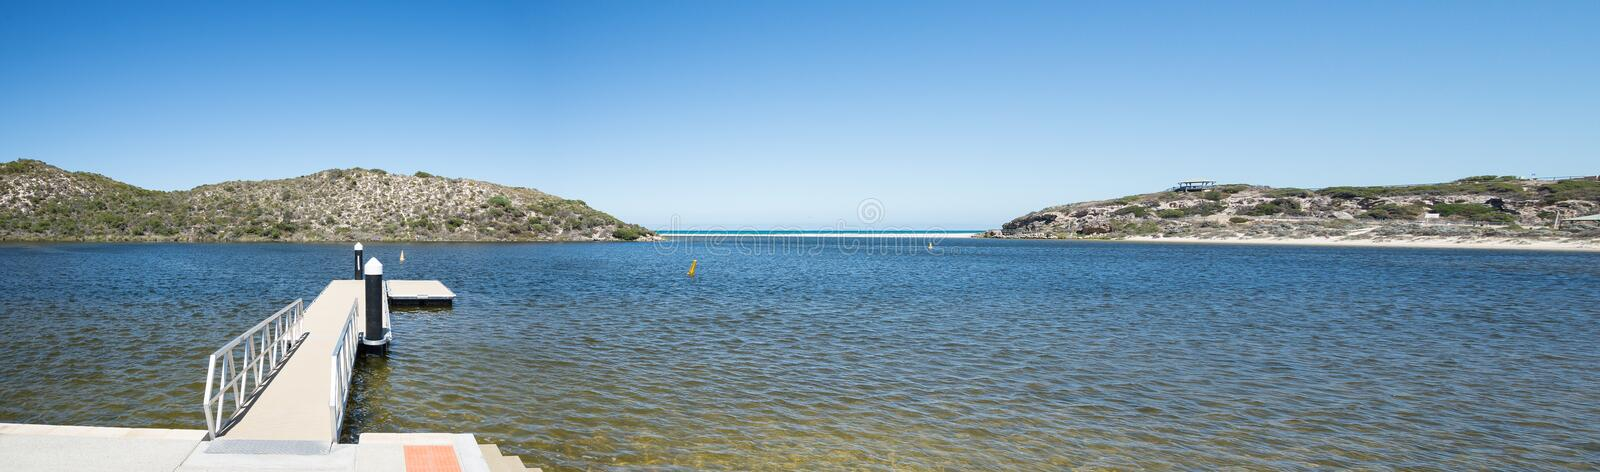 Panorama of Moore river lagoon and jetty. Panoramic view of the Moore River lagoon, jetty and beach in Western Australia royalty free stock image